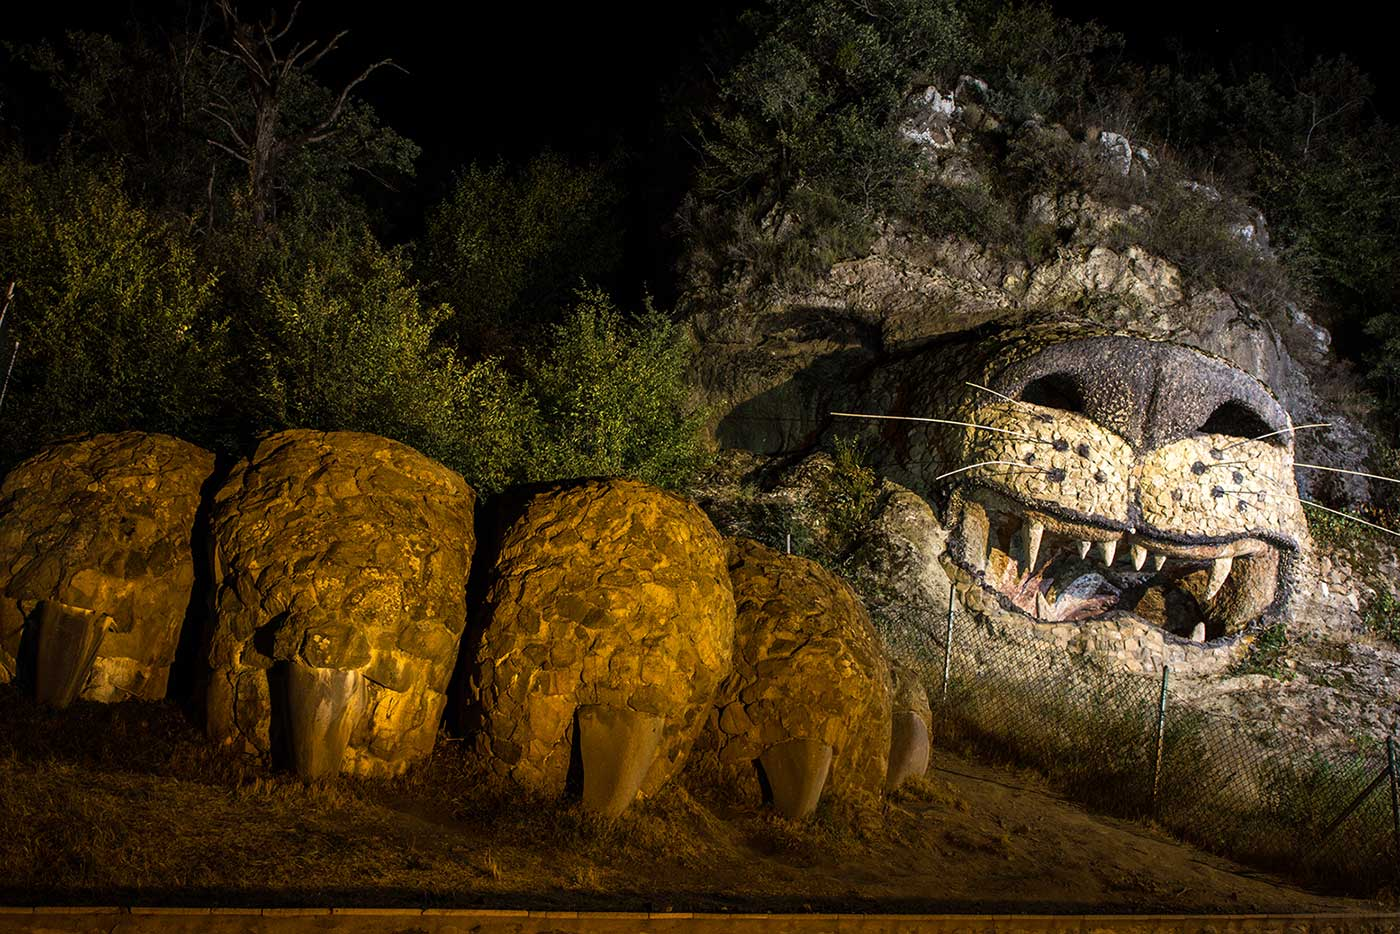 Behind the Sea Stone Hotel in Vank, Nagorno-Karabakh, a rocky hillside has been carved into the shape of a lion.